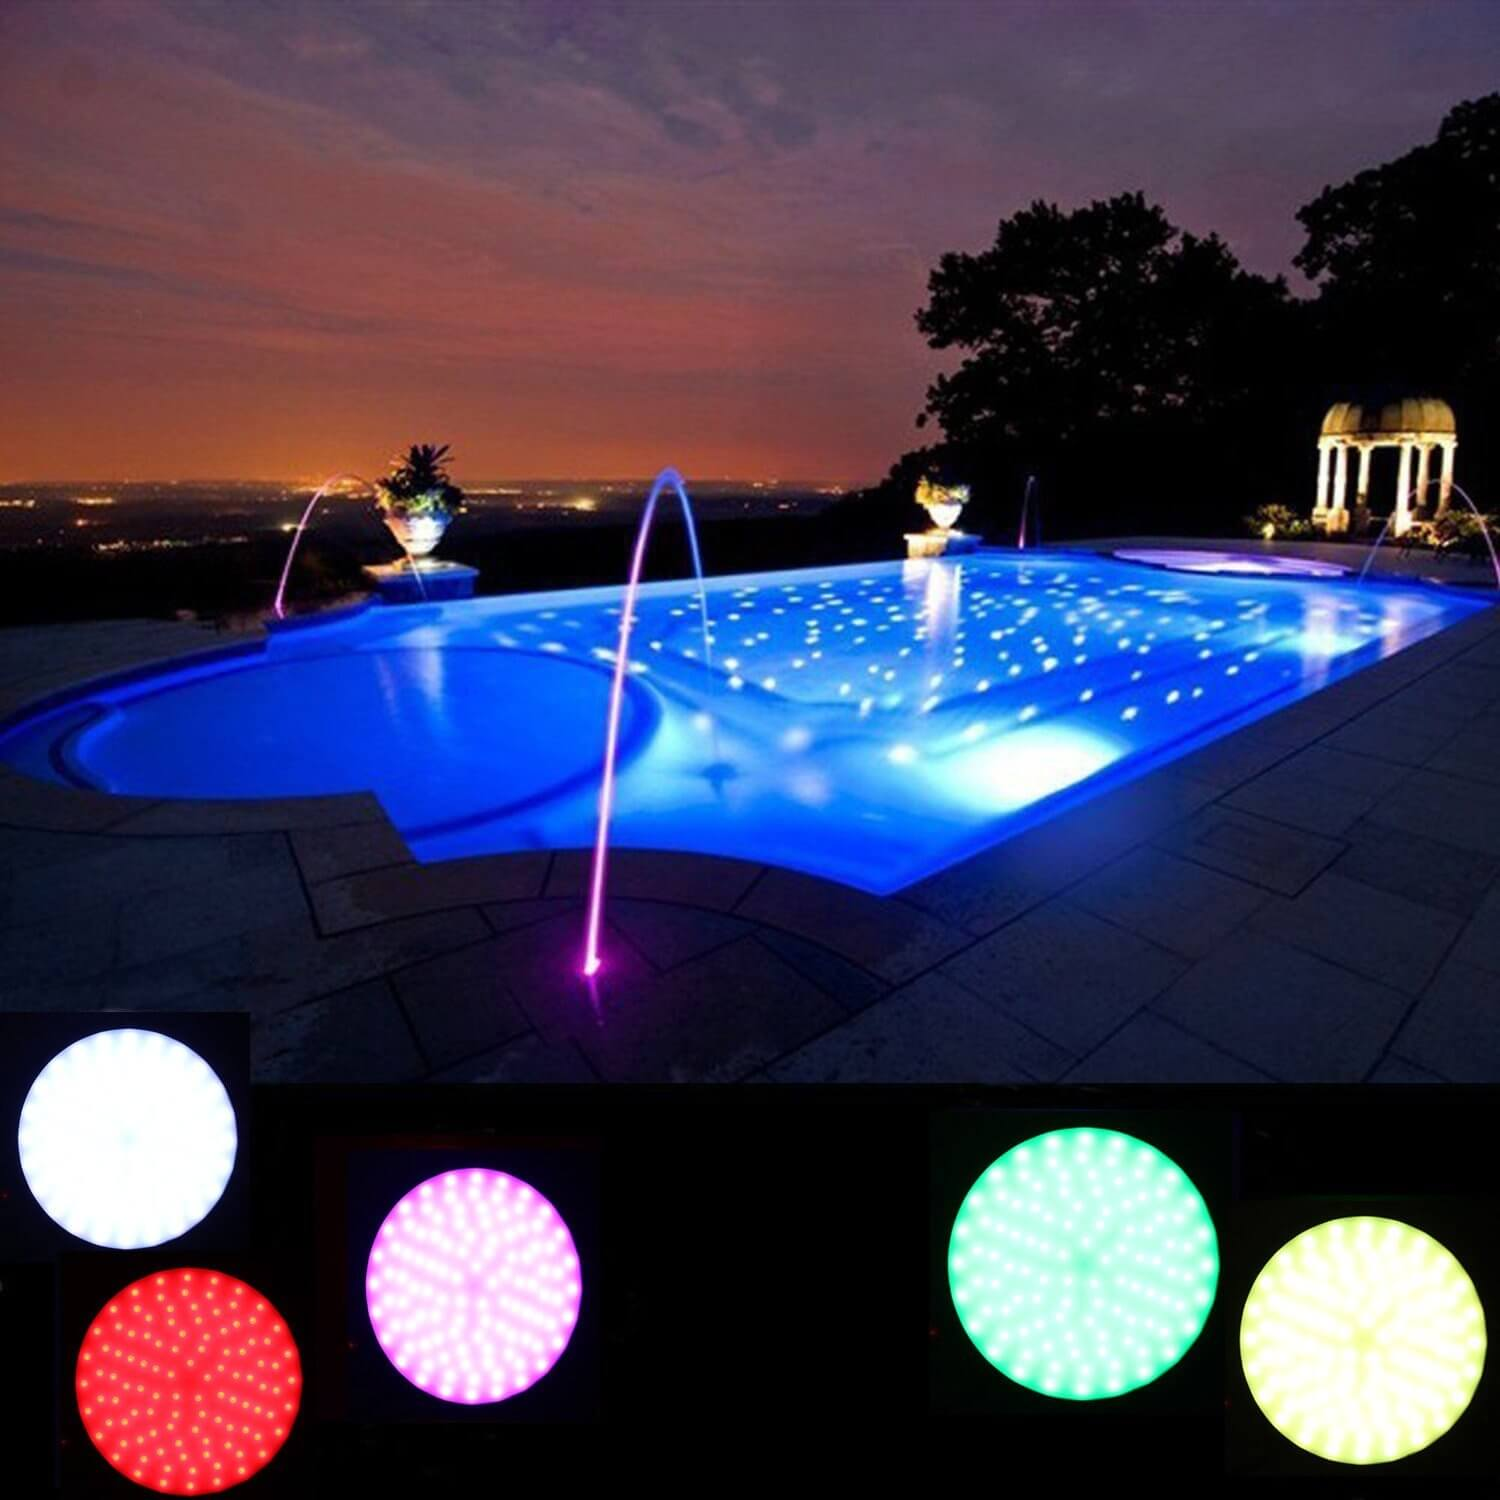 LEDs can light up the night!